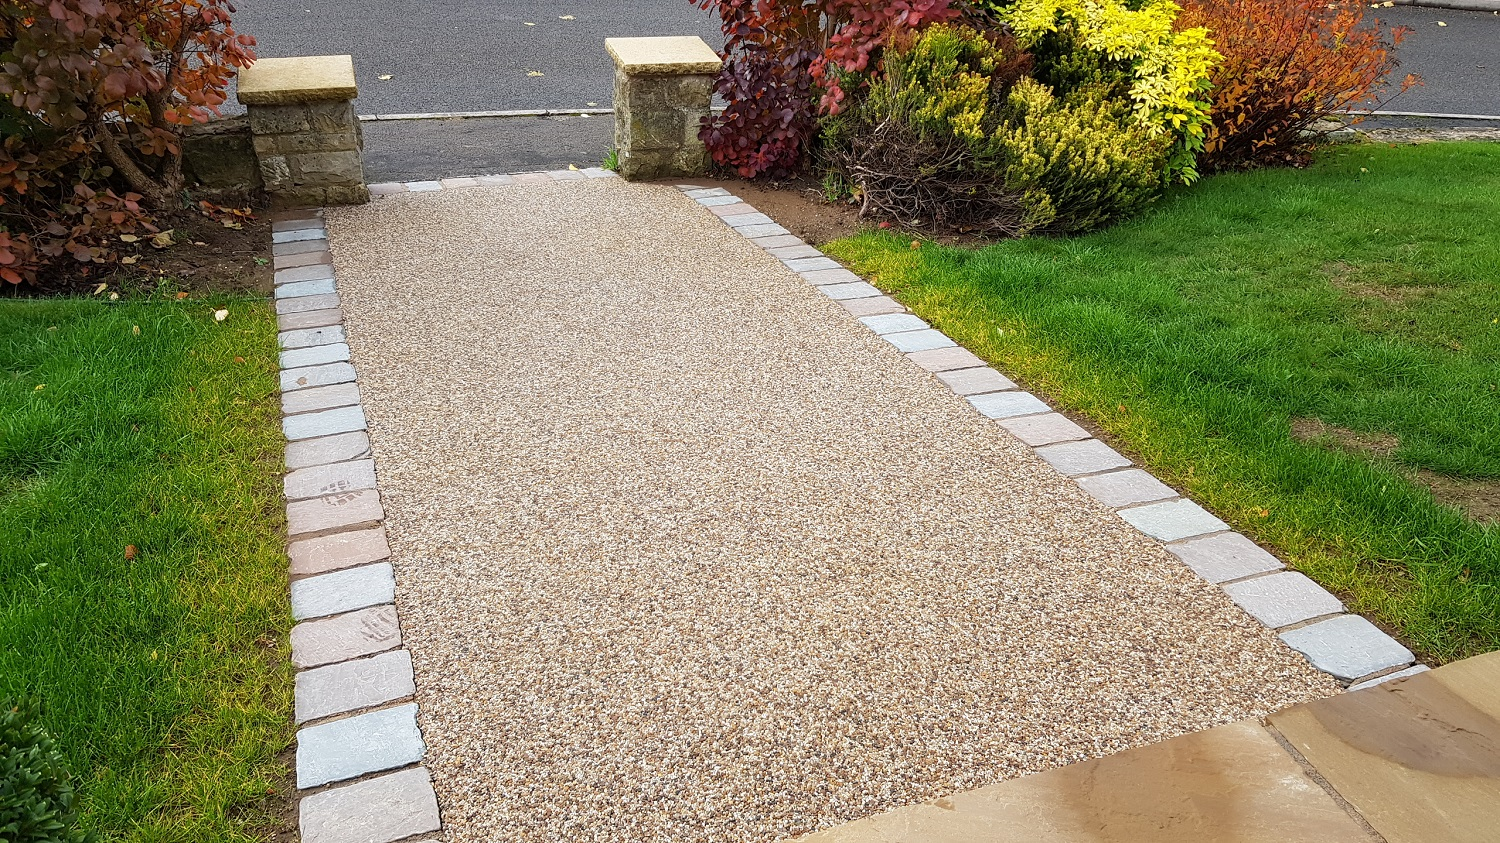 R4 - Milk Chocolate Mix Resin Bound Path Surfacing at Walton in Chesterfield